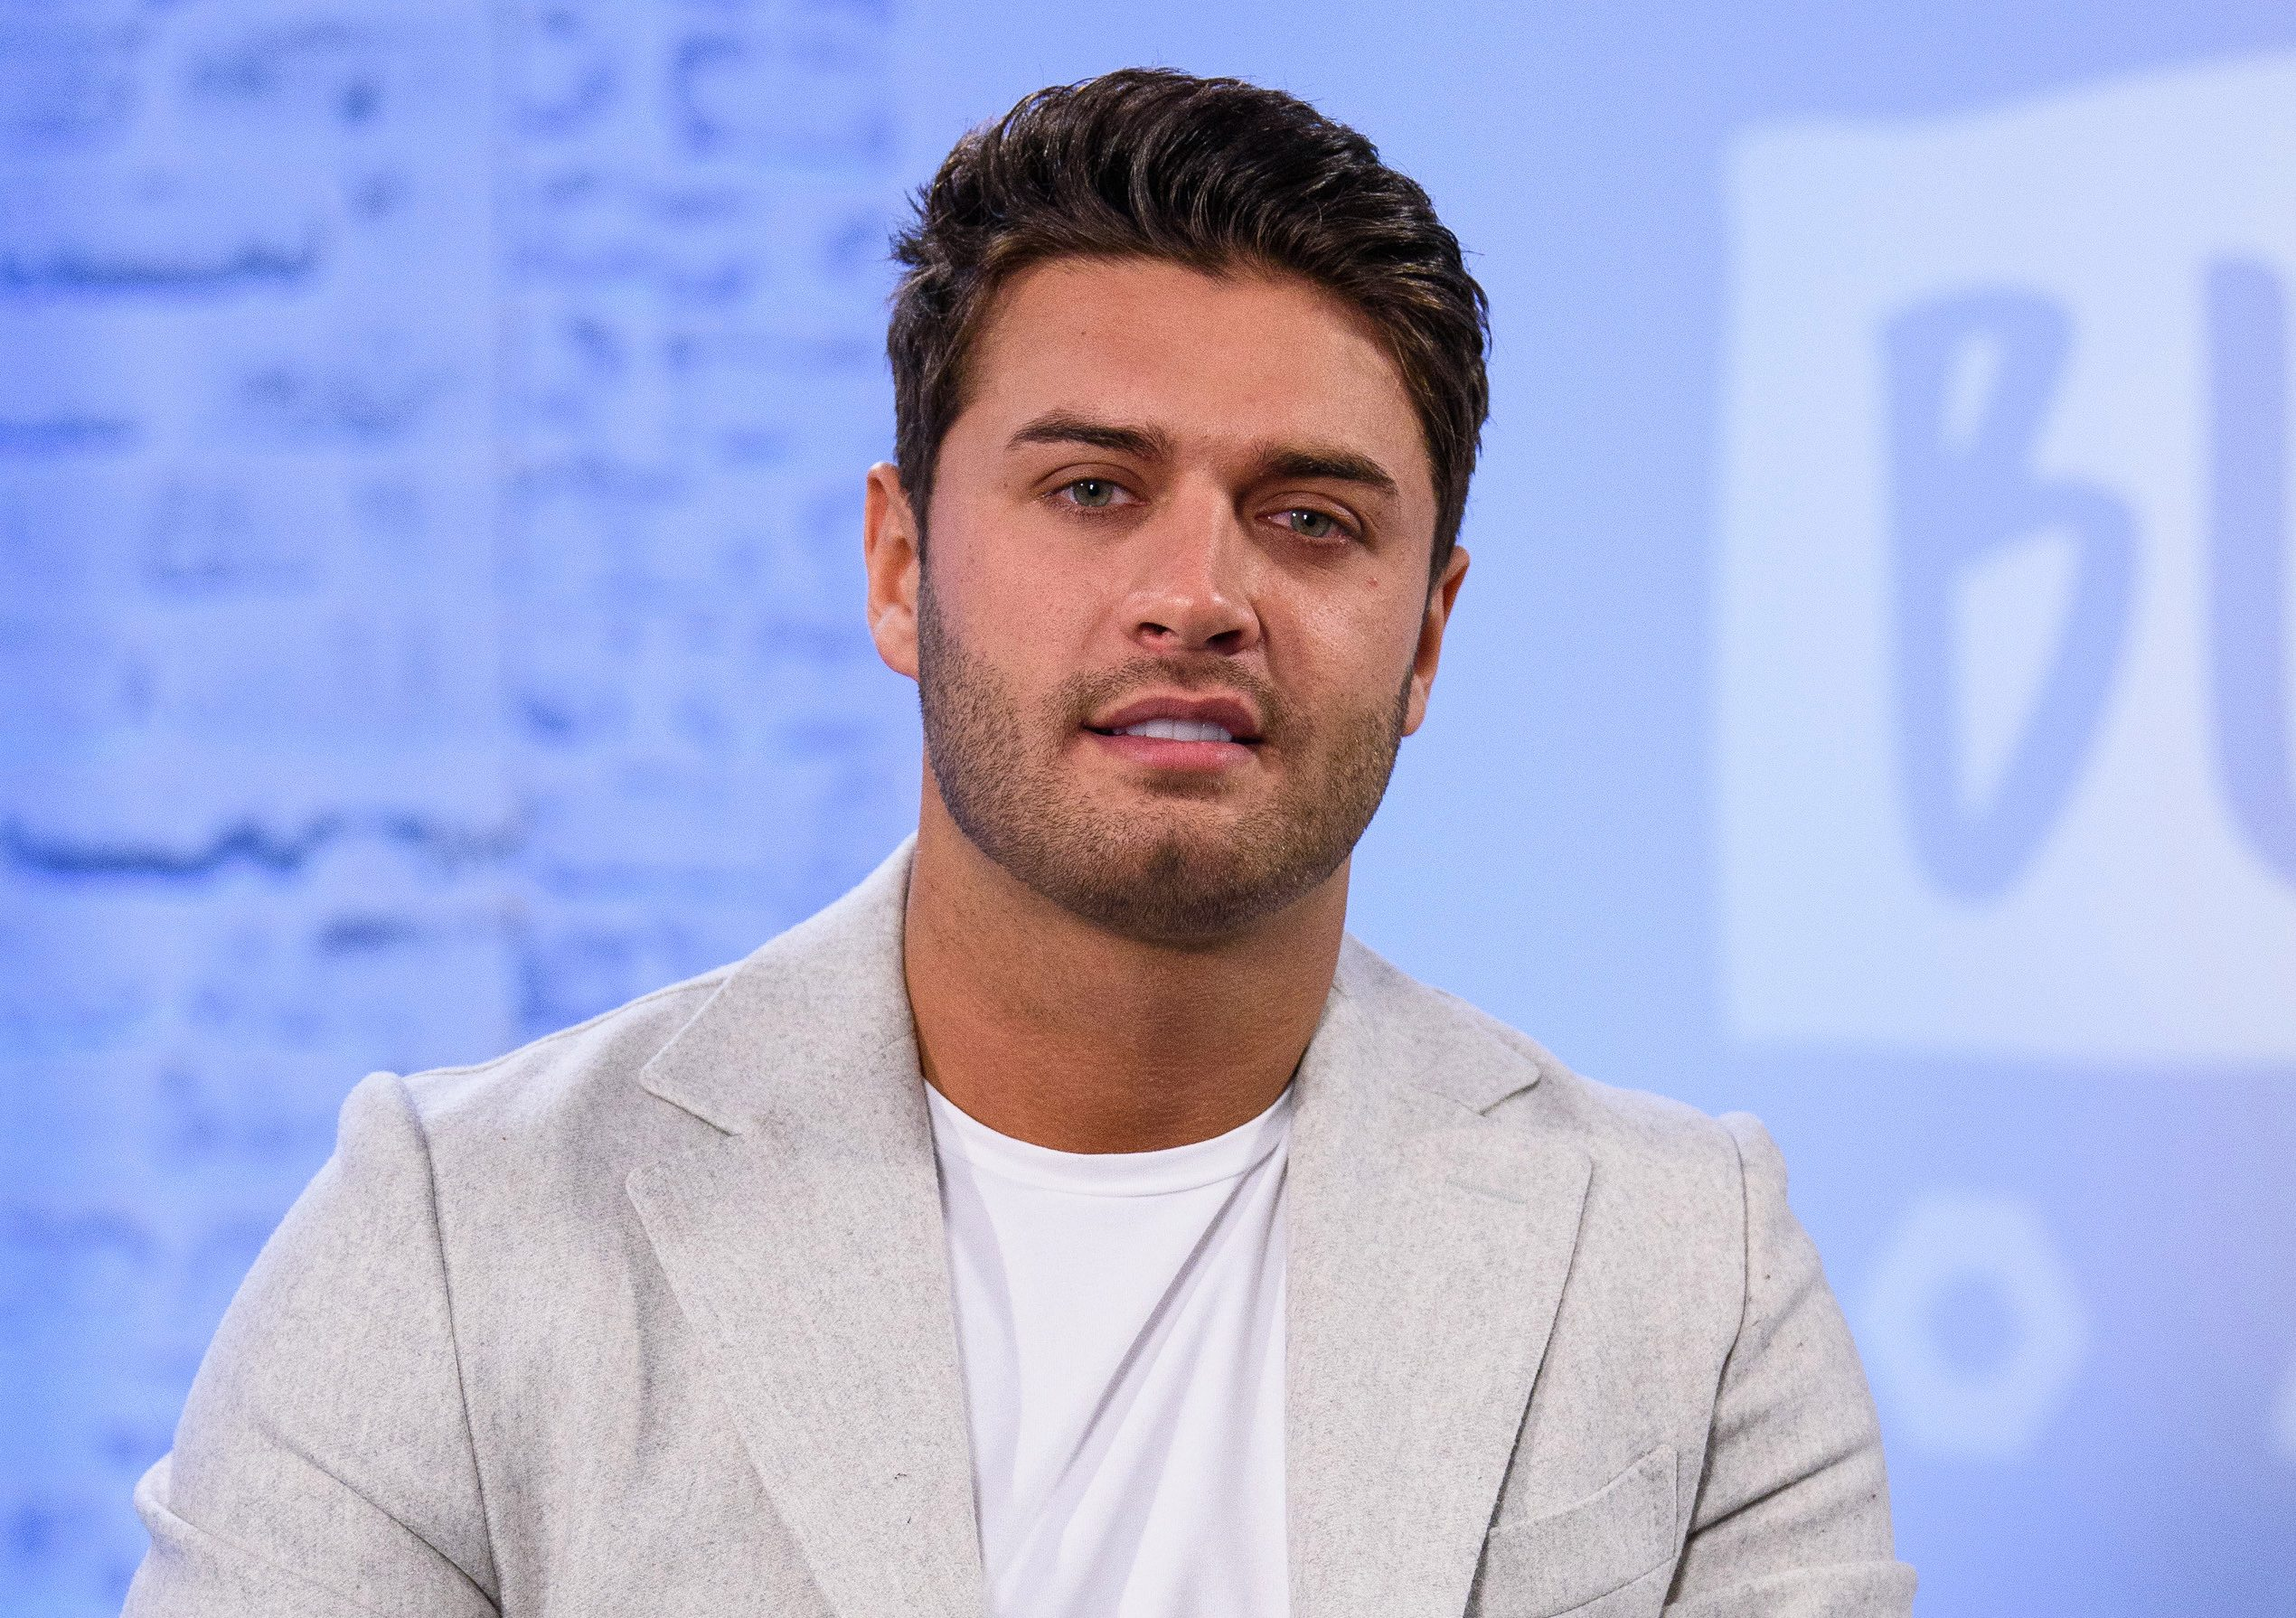 Love Island's Mike Thalassitis's body found in North London park as police confirm star died by suicide